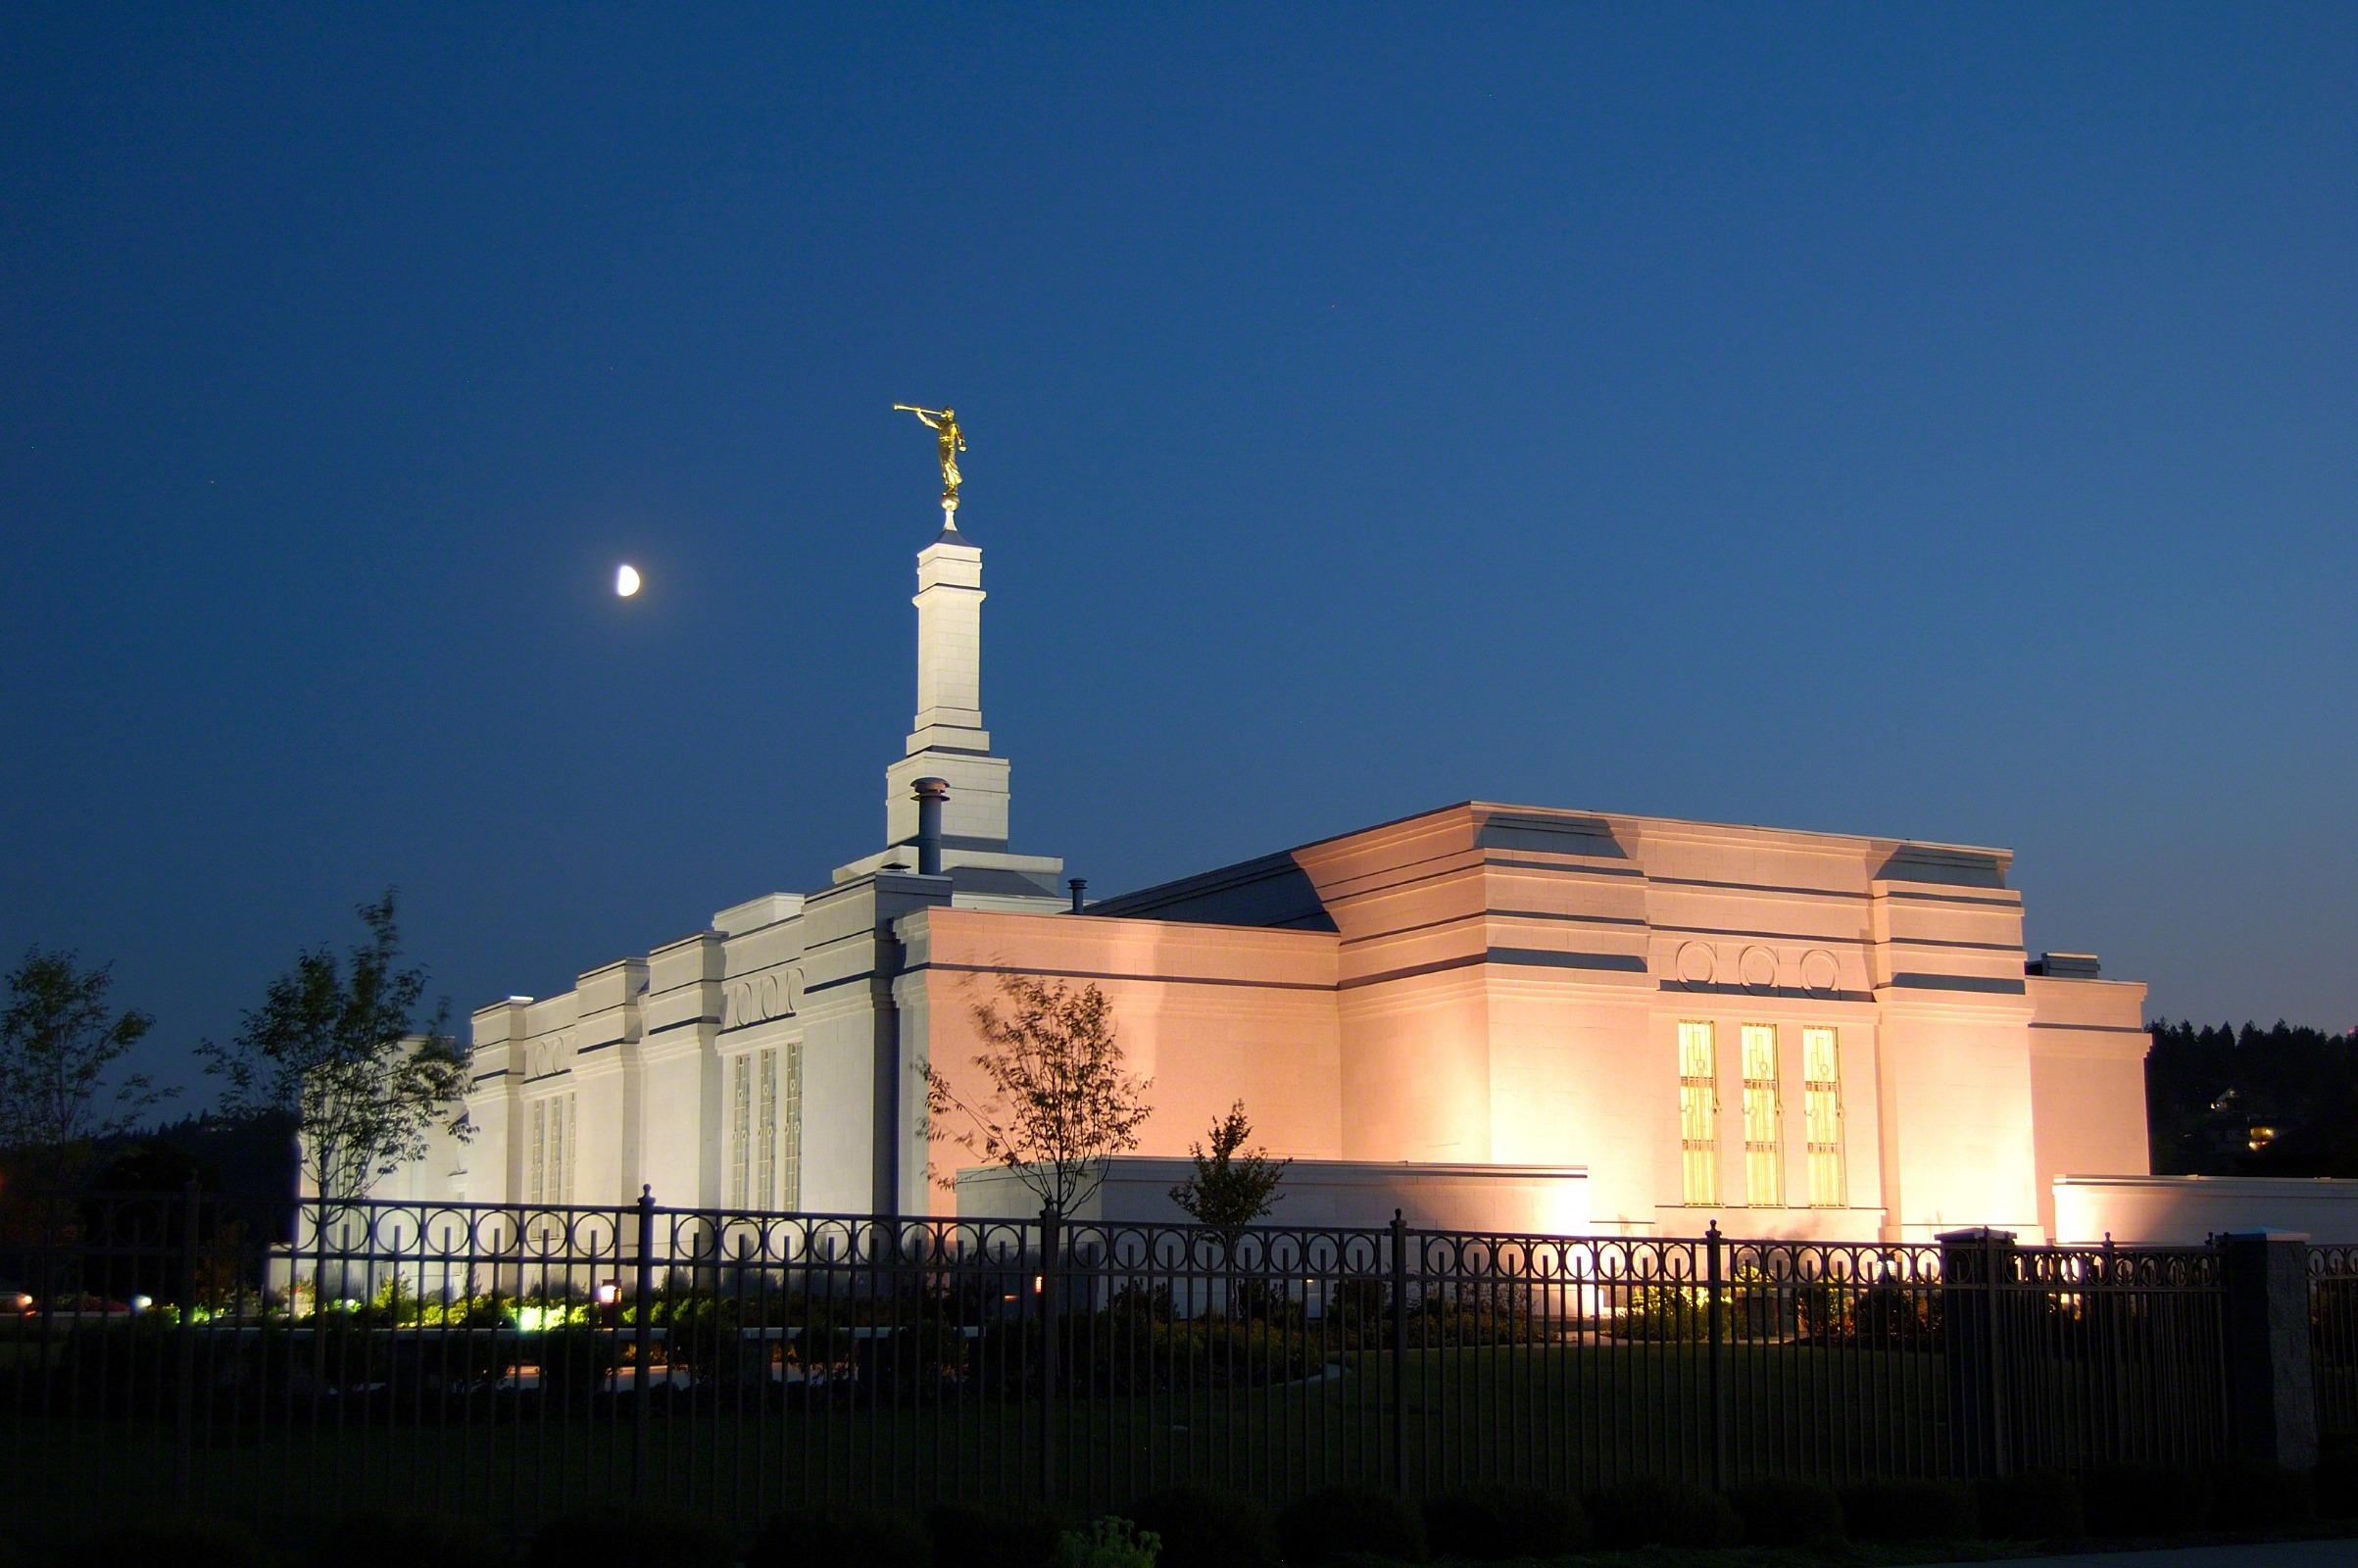 Mobile Wallpaper Inspirational Quotes Spokane Washington Temple In The Evening